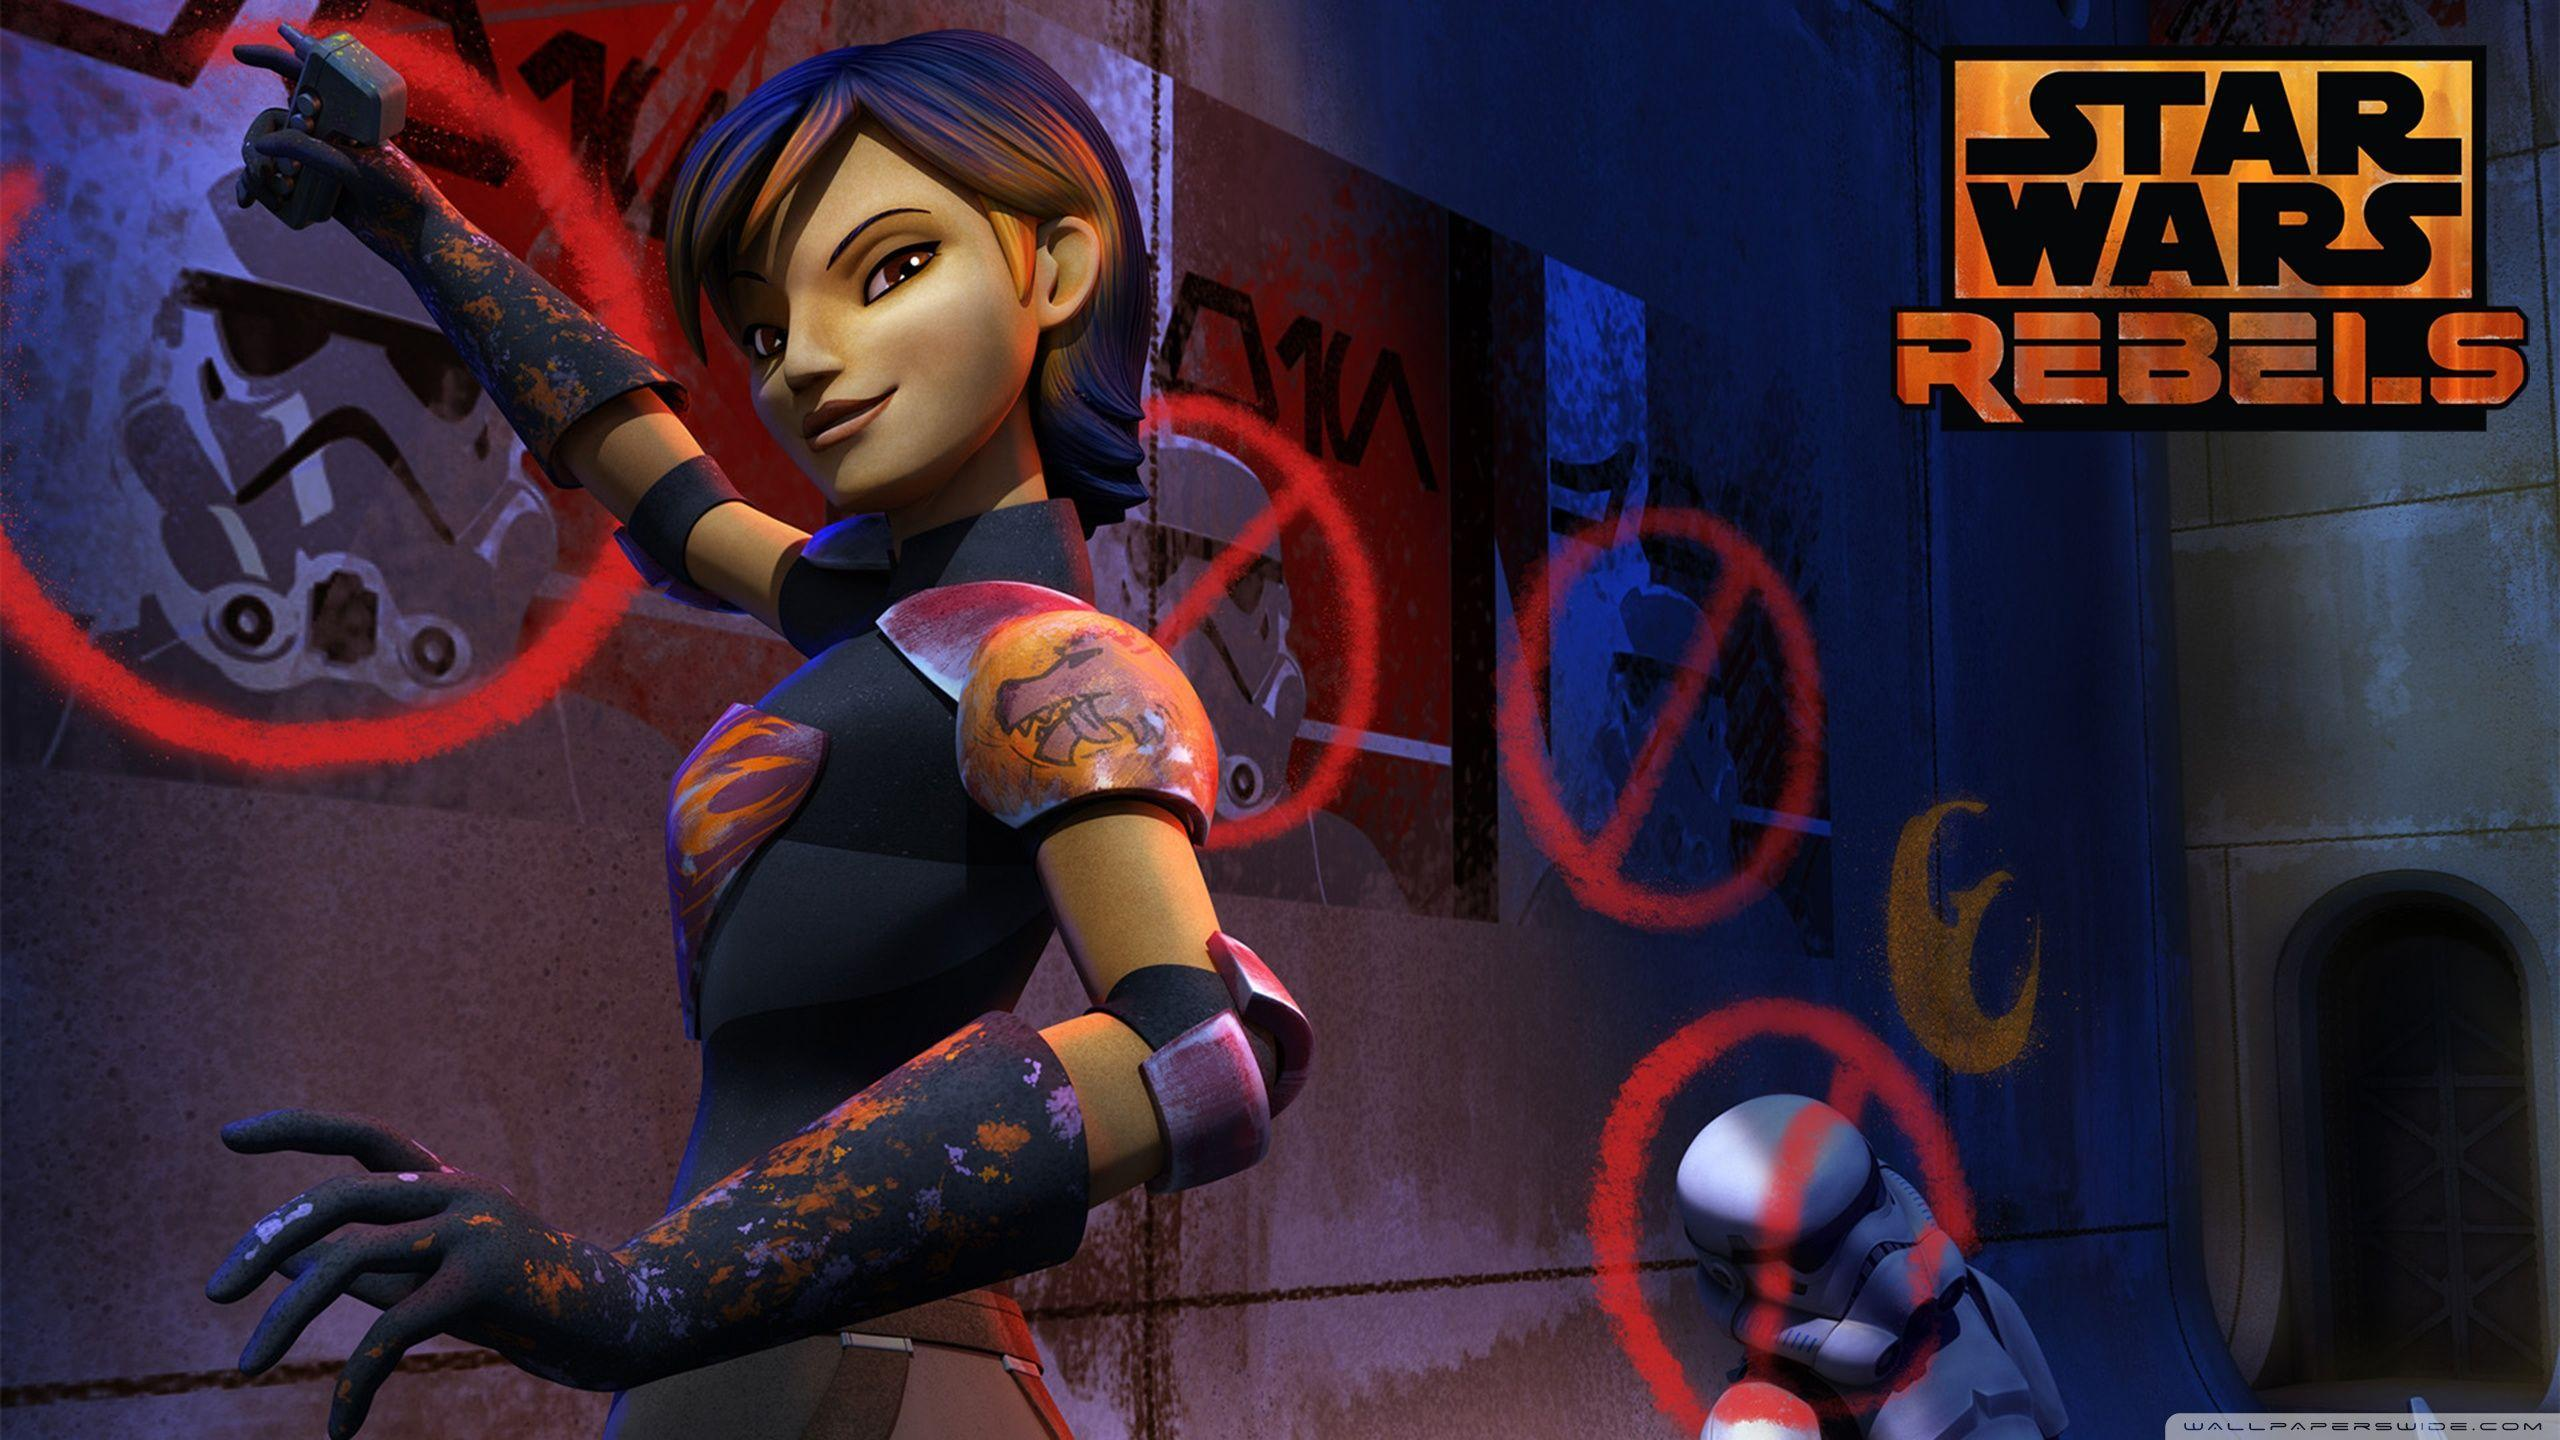 Star Wars Rebels Hd Wallpapers Wallpaper Cave